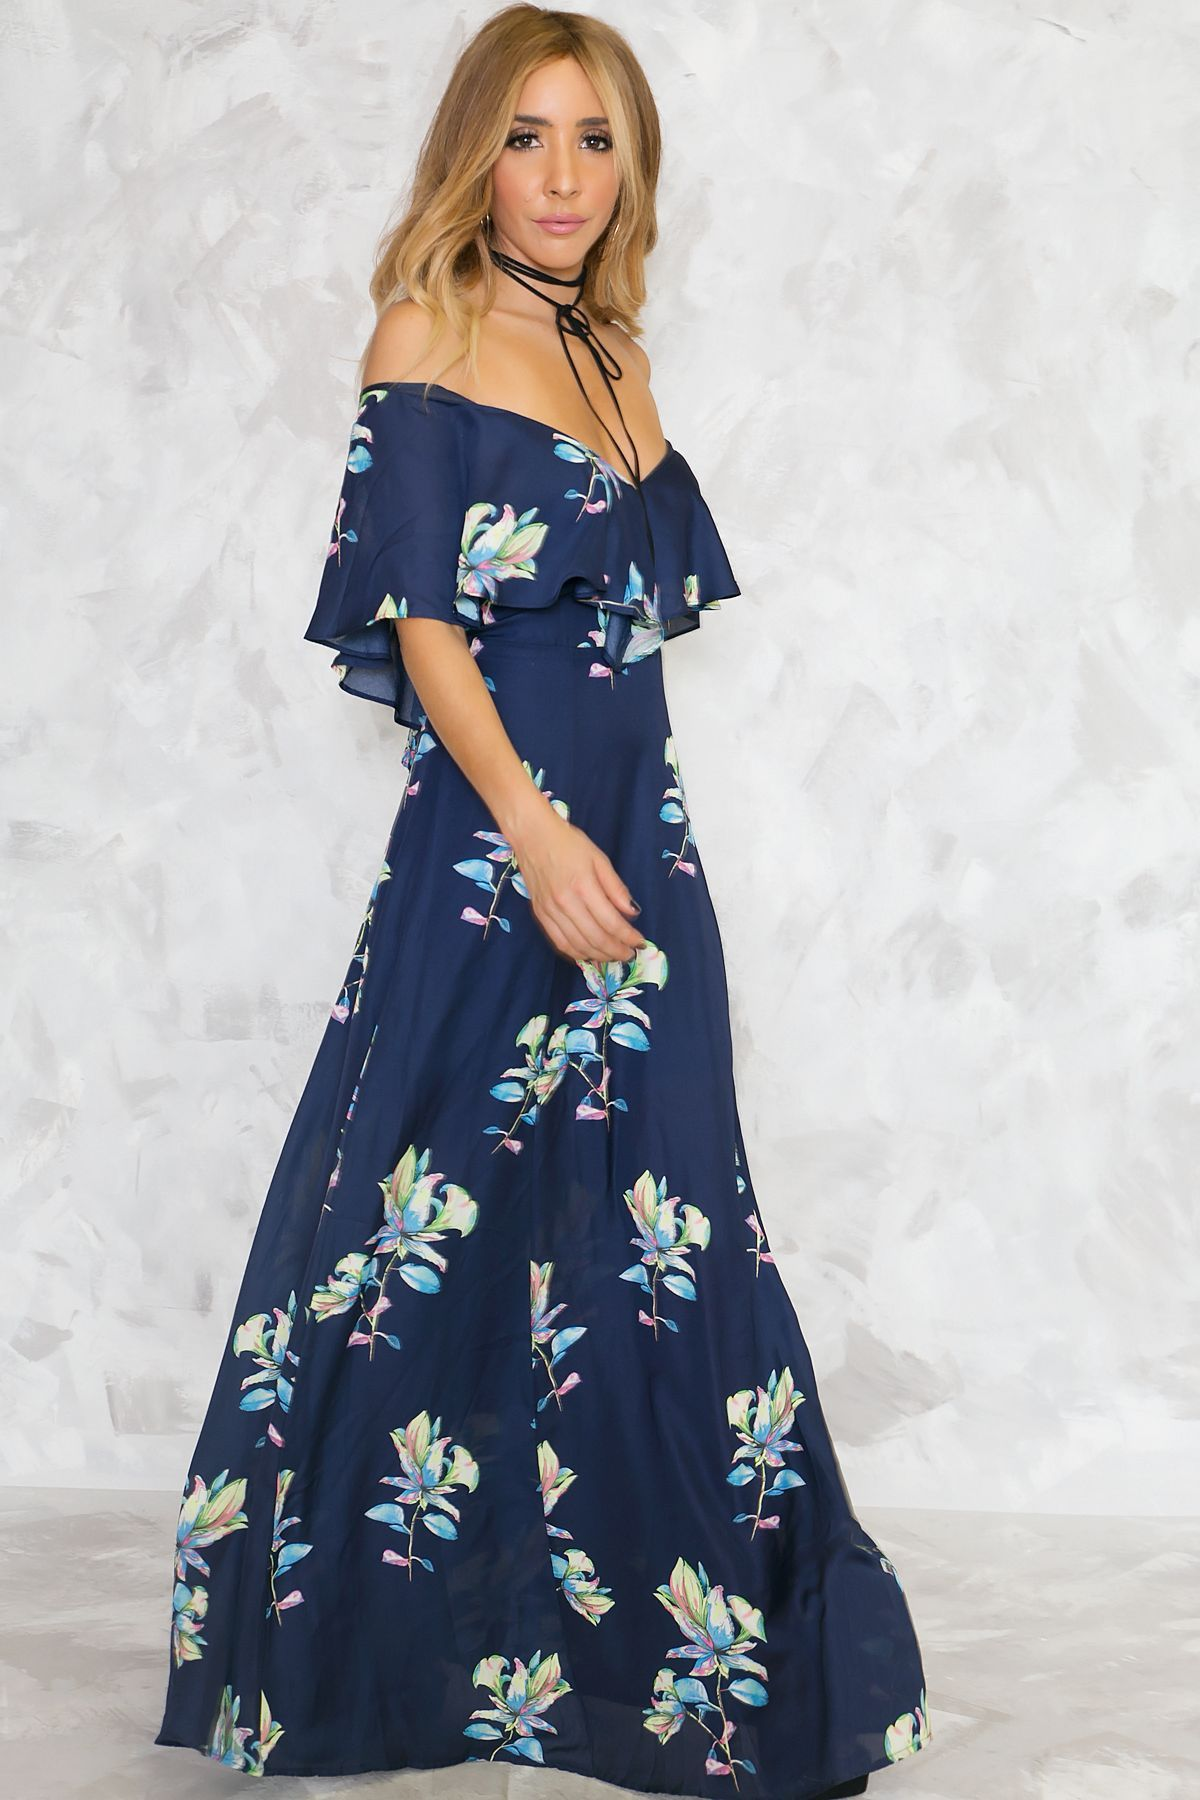 4875f442464ef The Talk To Me Floral Maxi Dress features a navy multi-colored floral  print